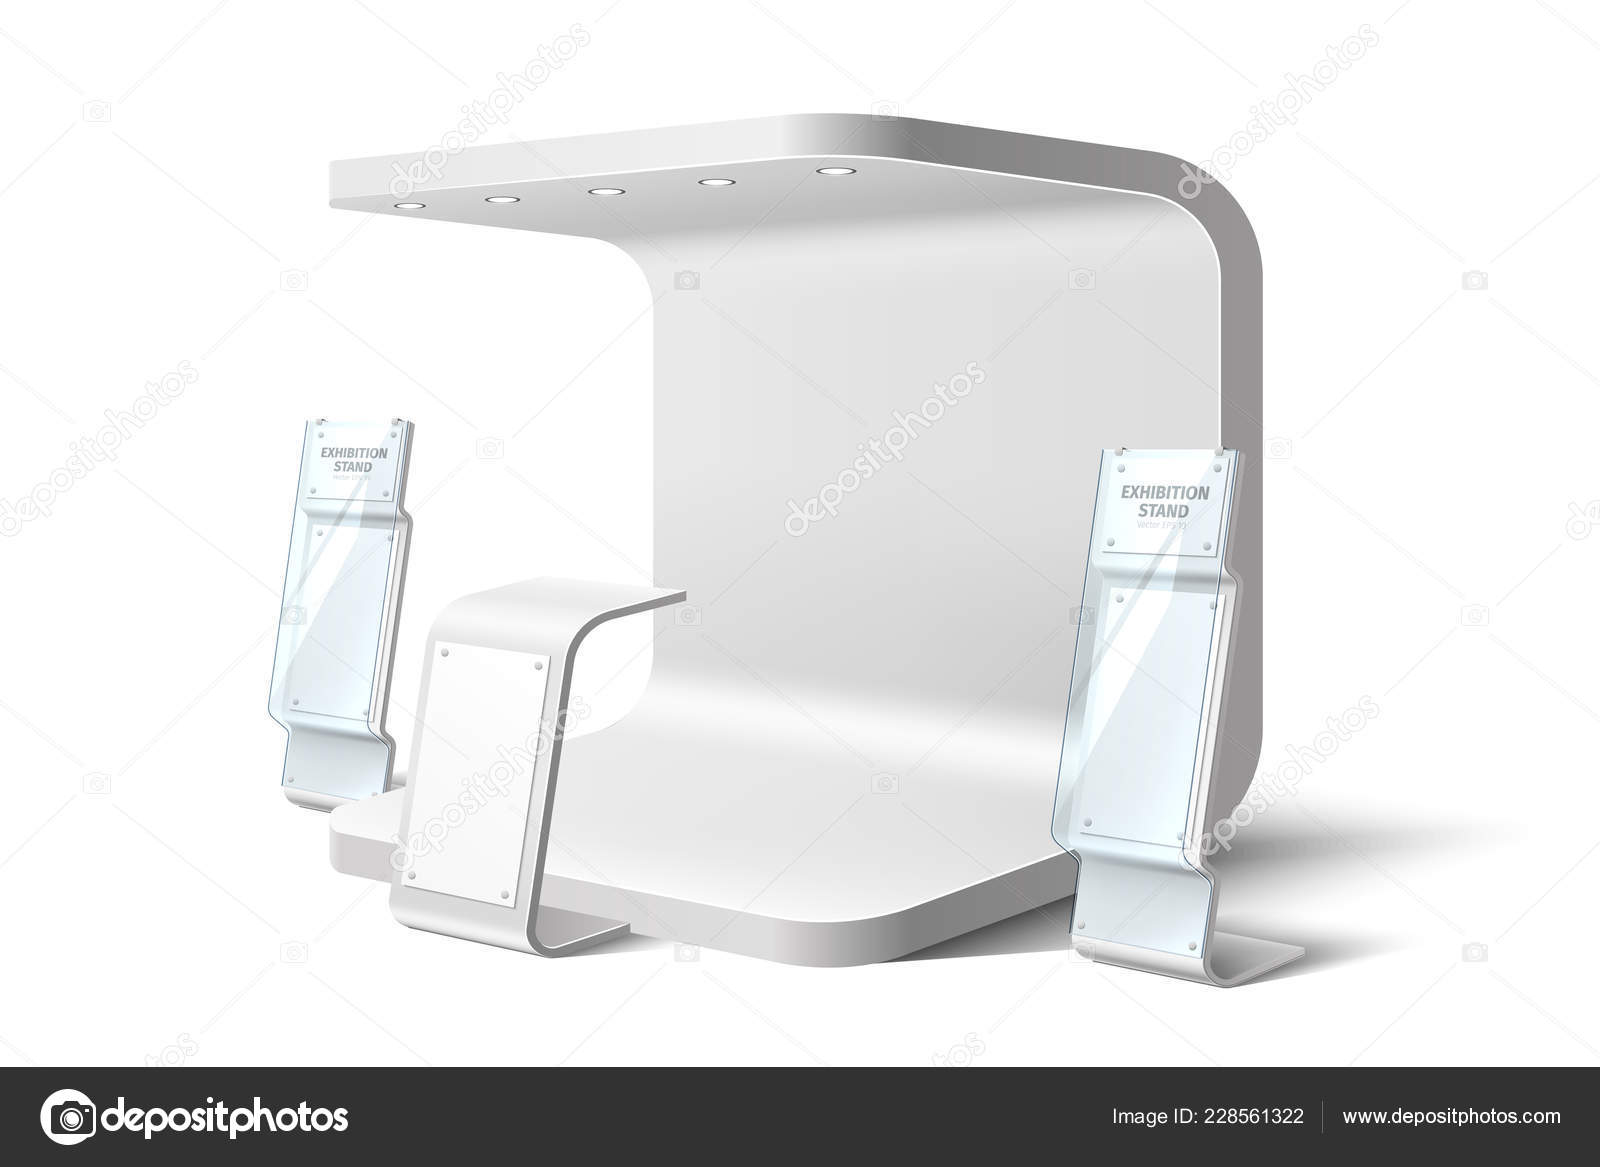 Expo Exhibition Stands Up : Vector exhibition stand business expo mock up u stock vector